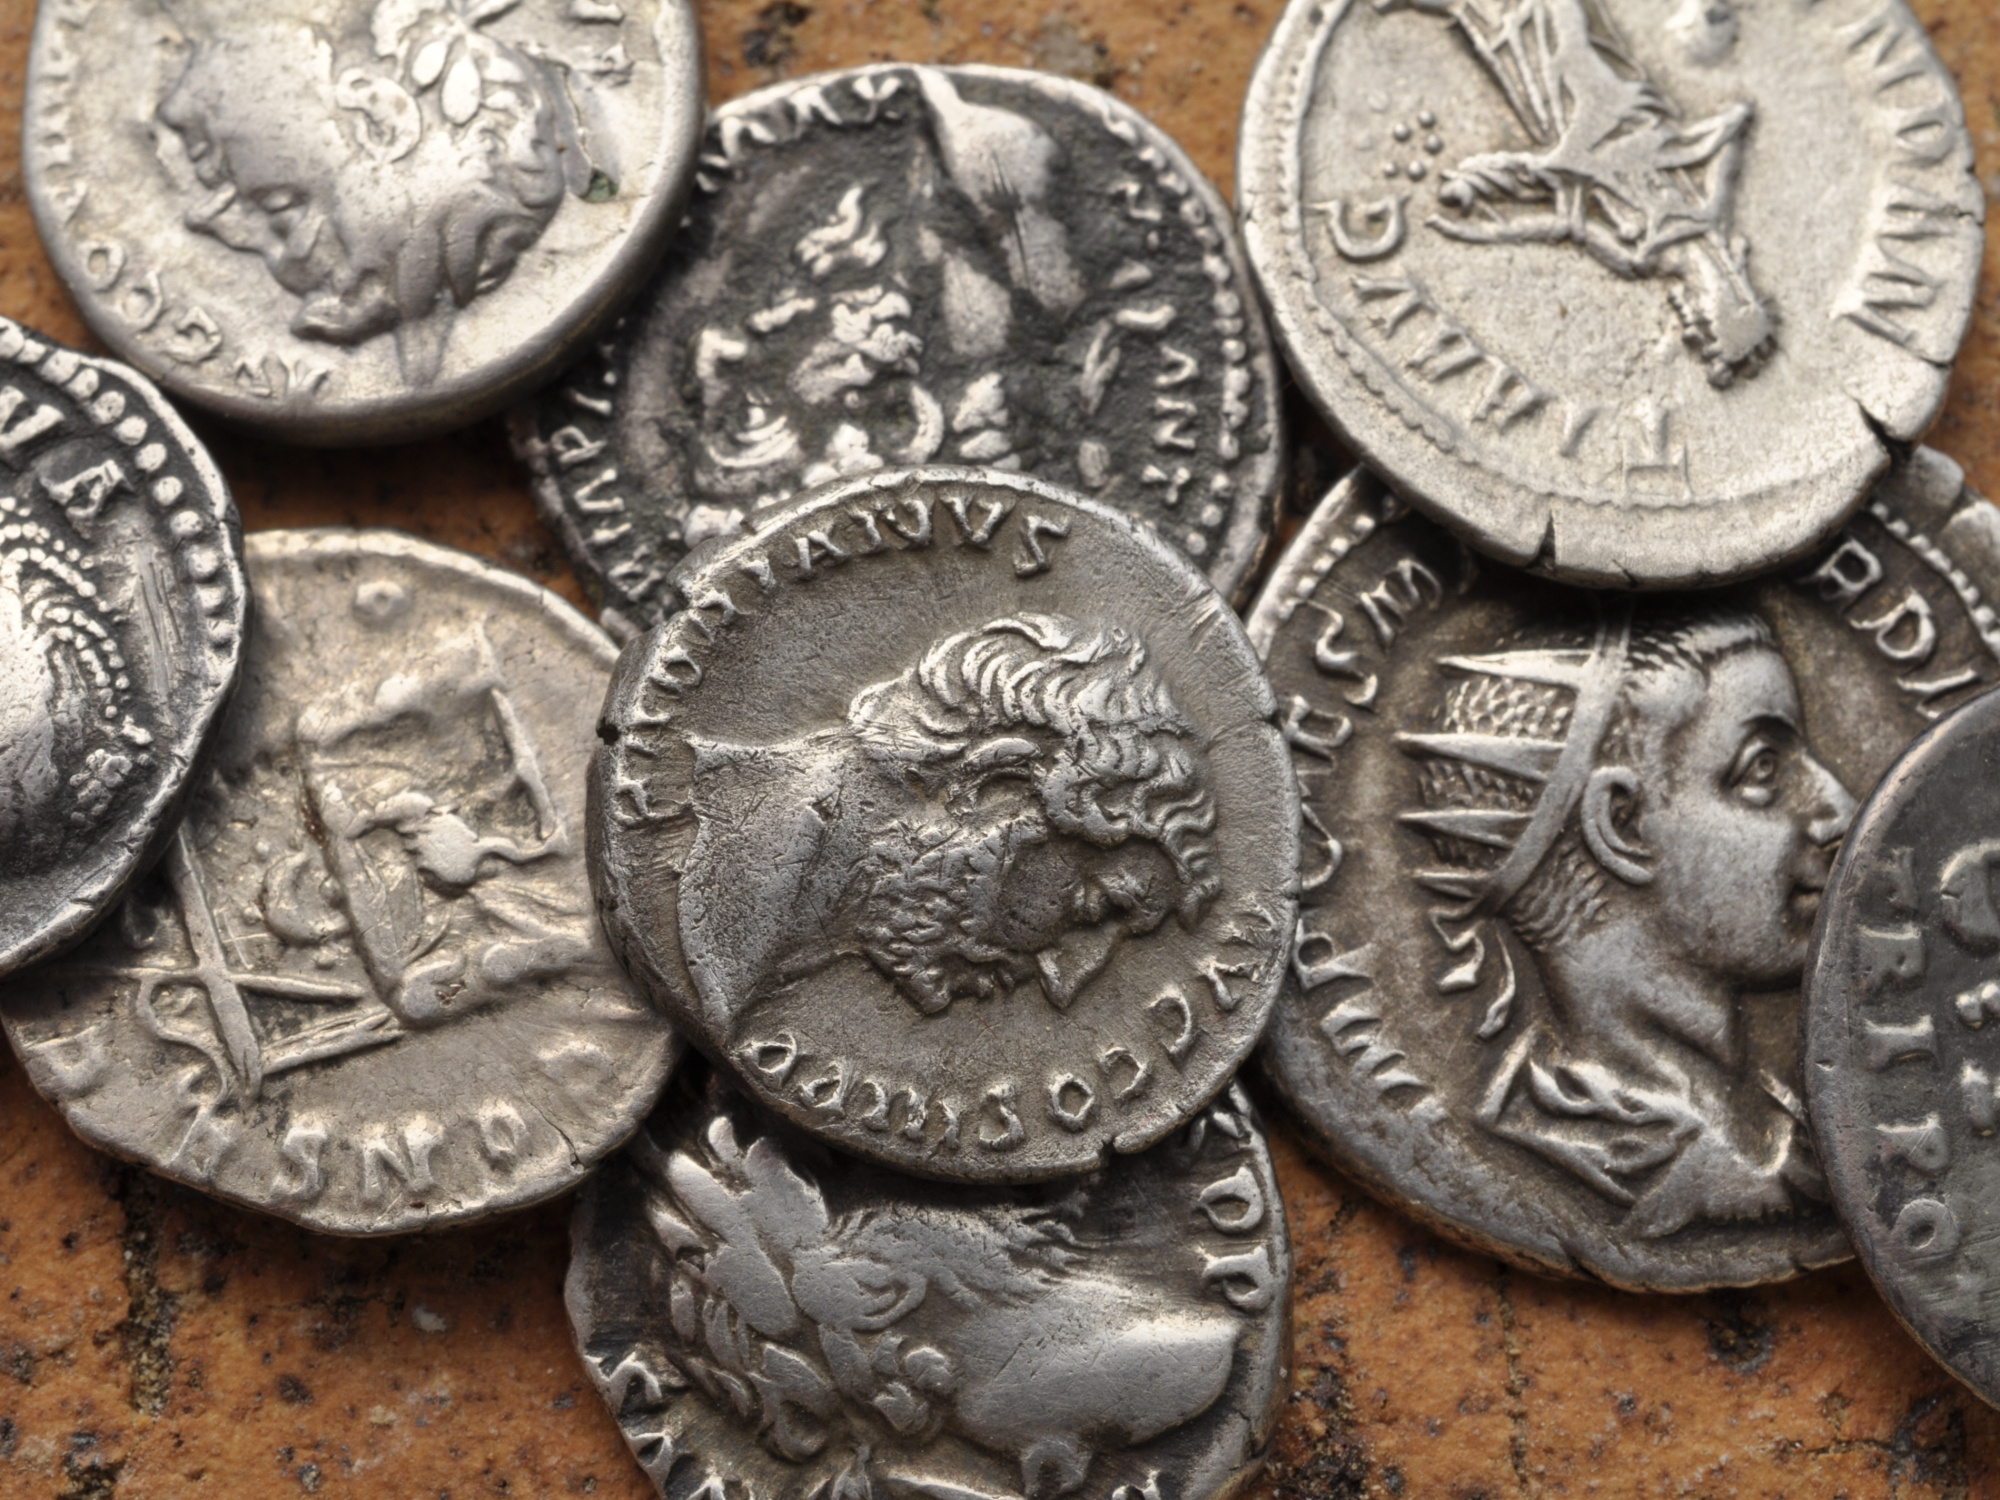 old coins.jpeg